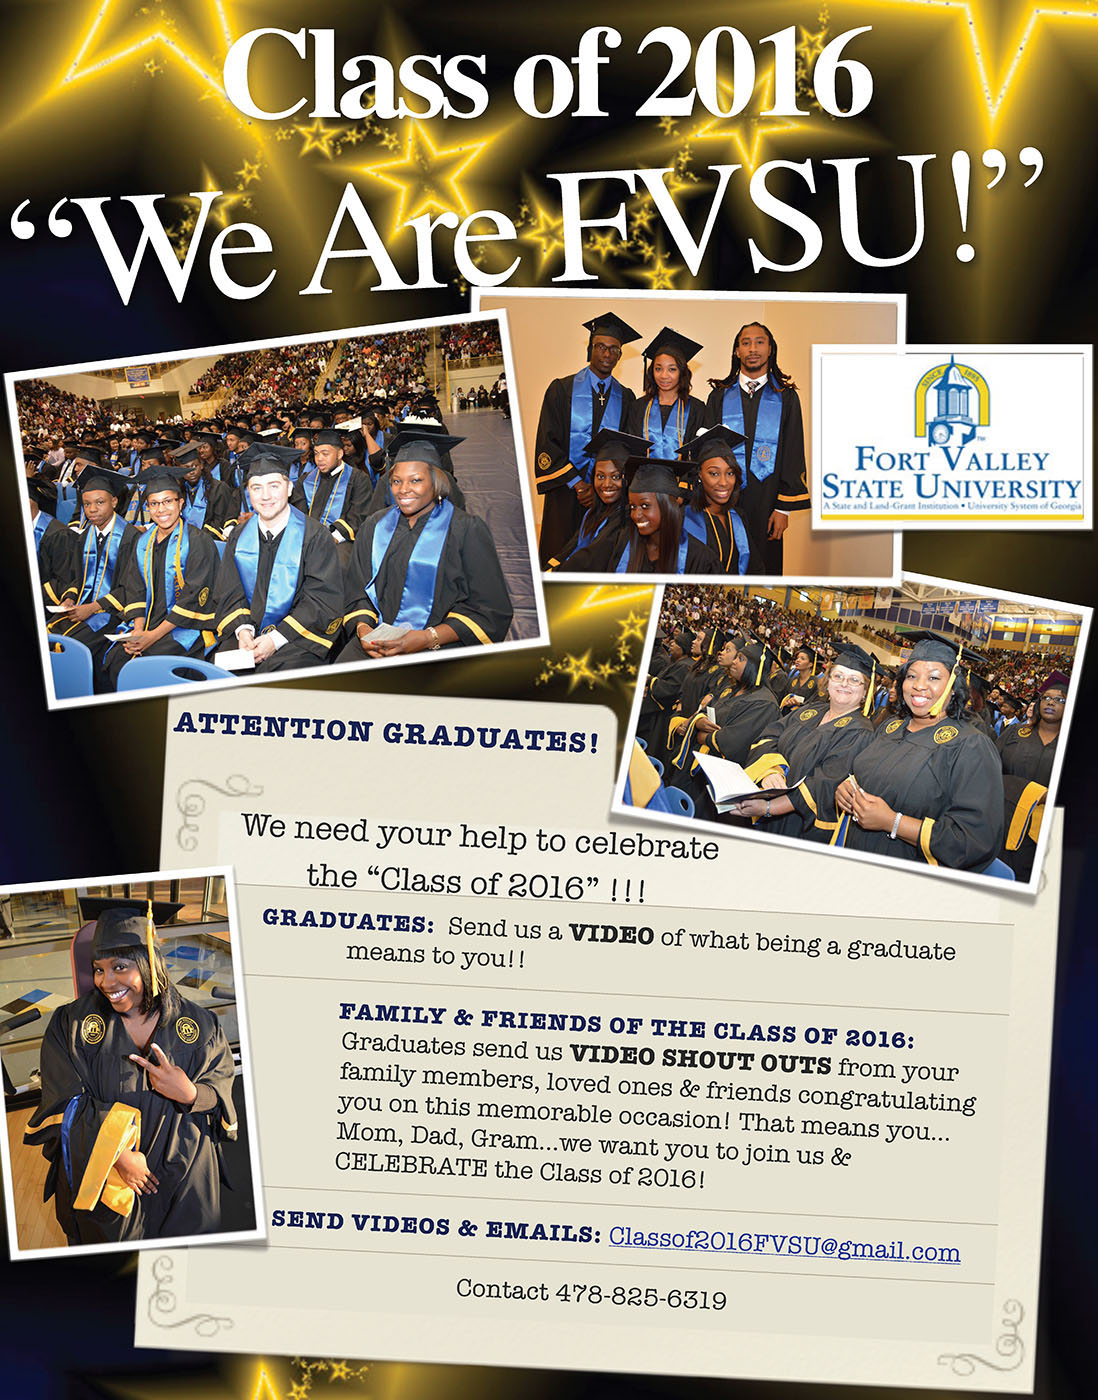 We are FVSU Shout-Out